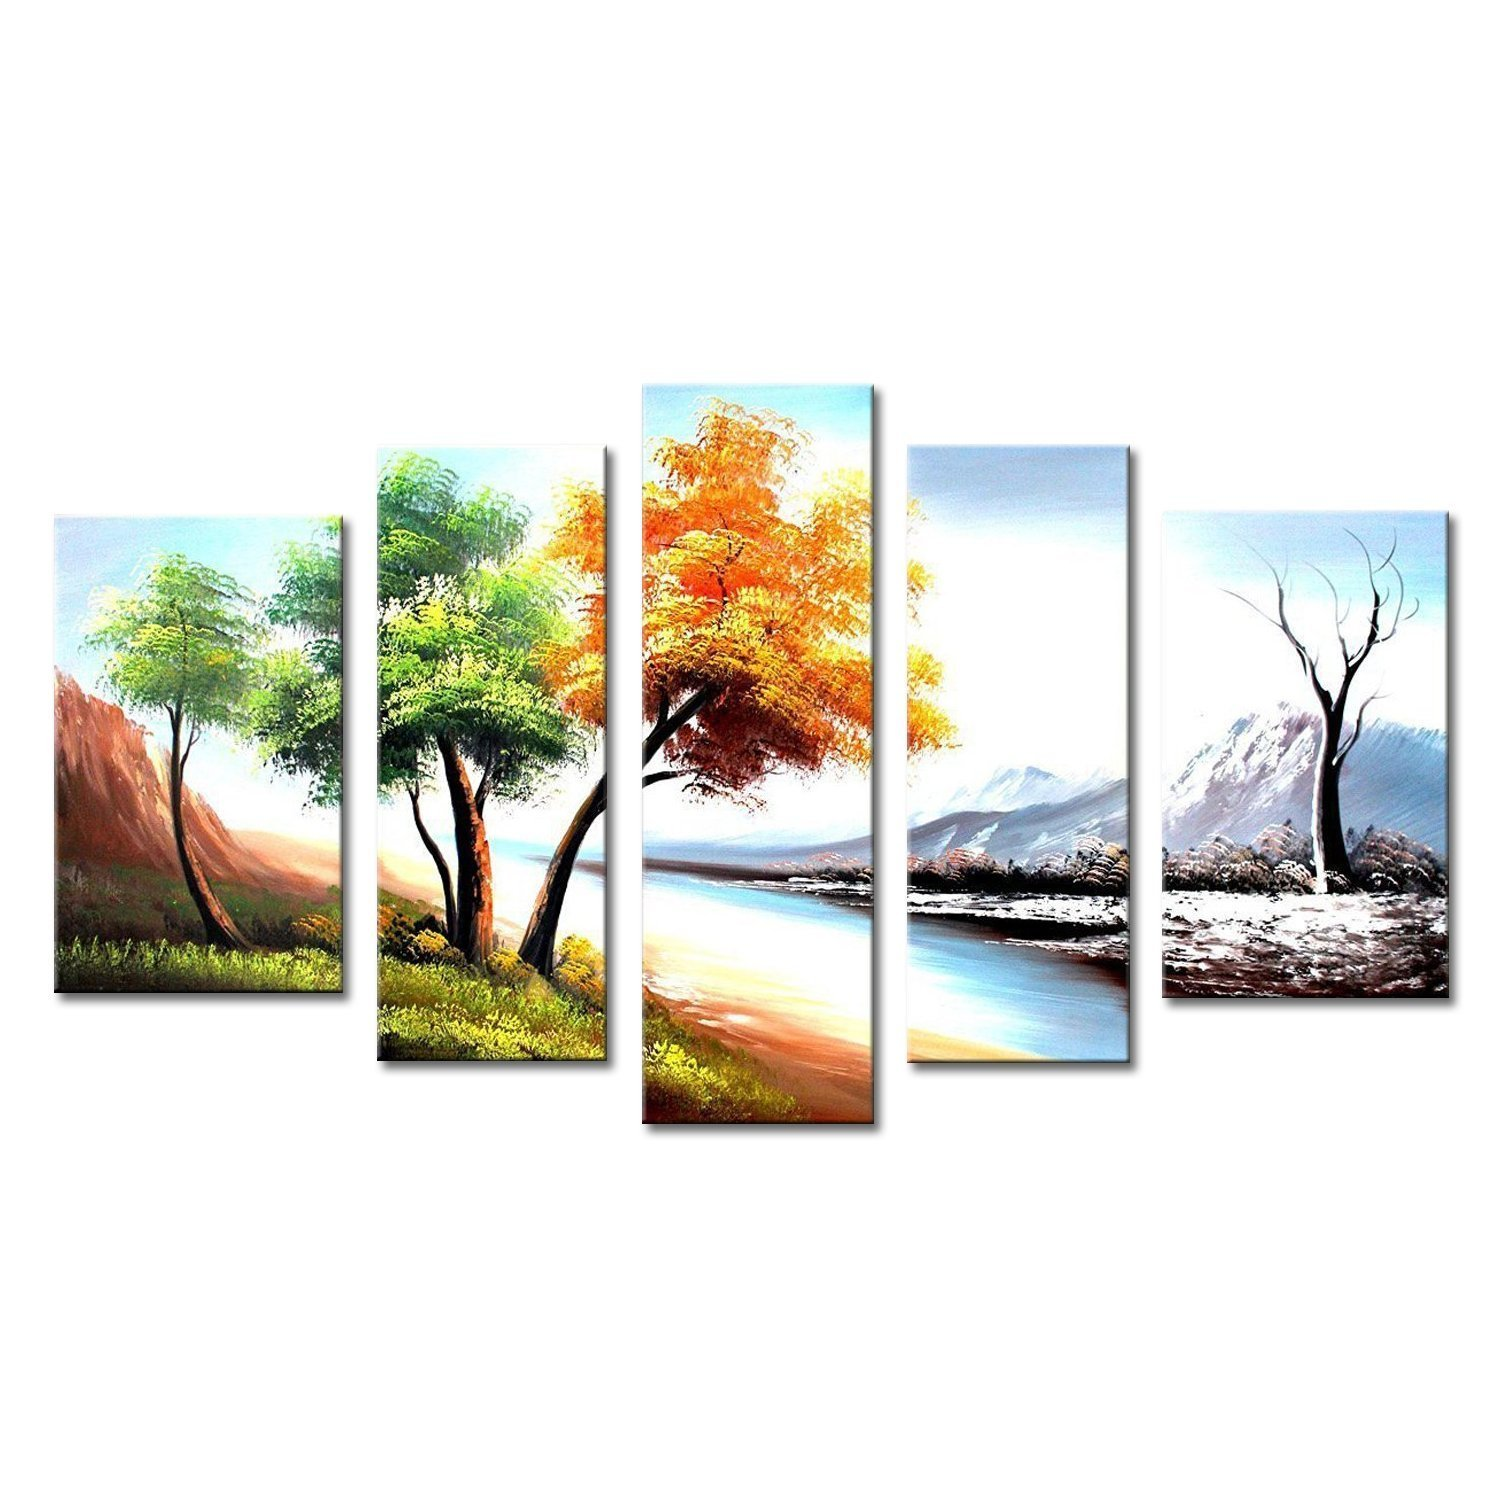 FLY SPRAY 5-Piece 100% Hand Painted Oil Paintings Four Seasons Landscape  Panel Stretched Framed Tree Snow River Mountain Modern Abstract Canvas  Living Room ... - FLY SPRAY 5-Piece 100% Hand Painted Oil Paintings Four Seasons